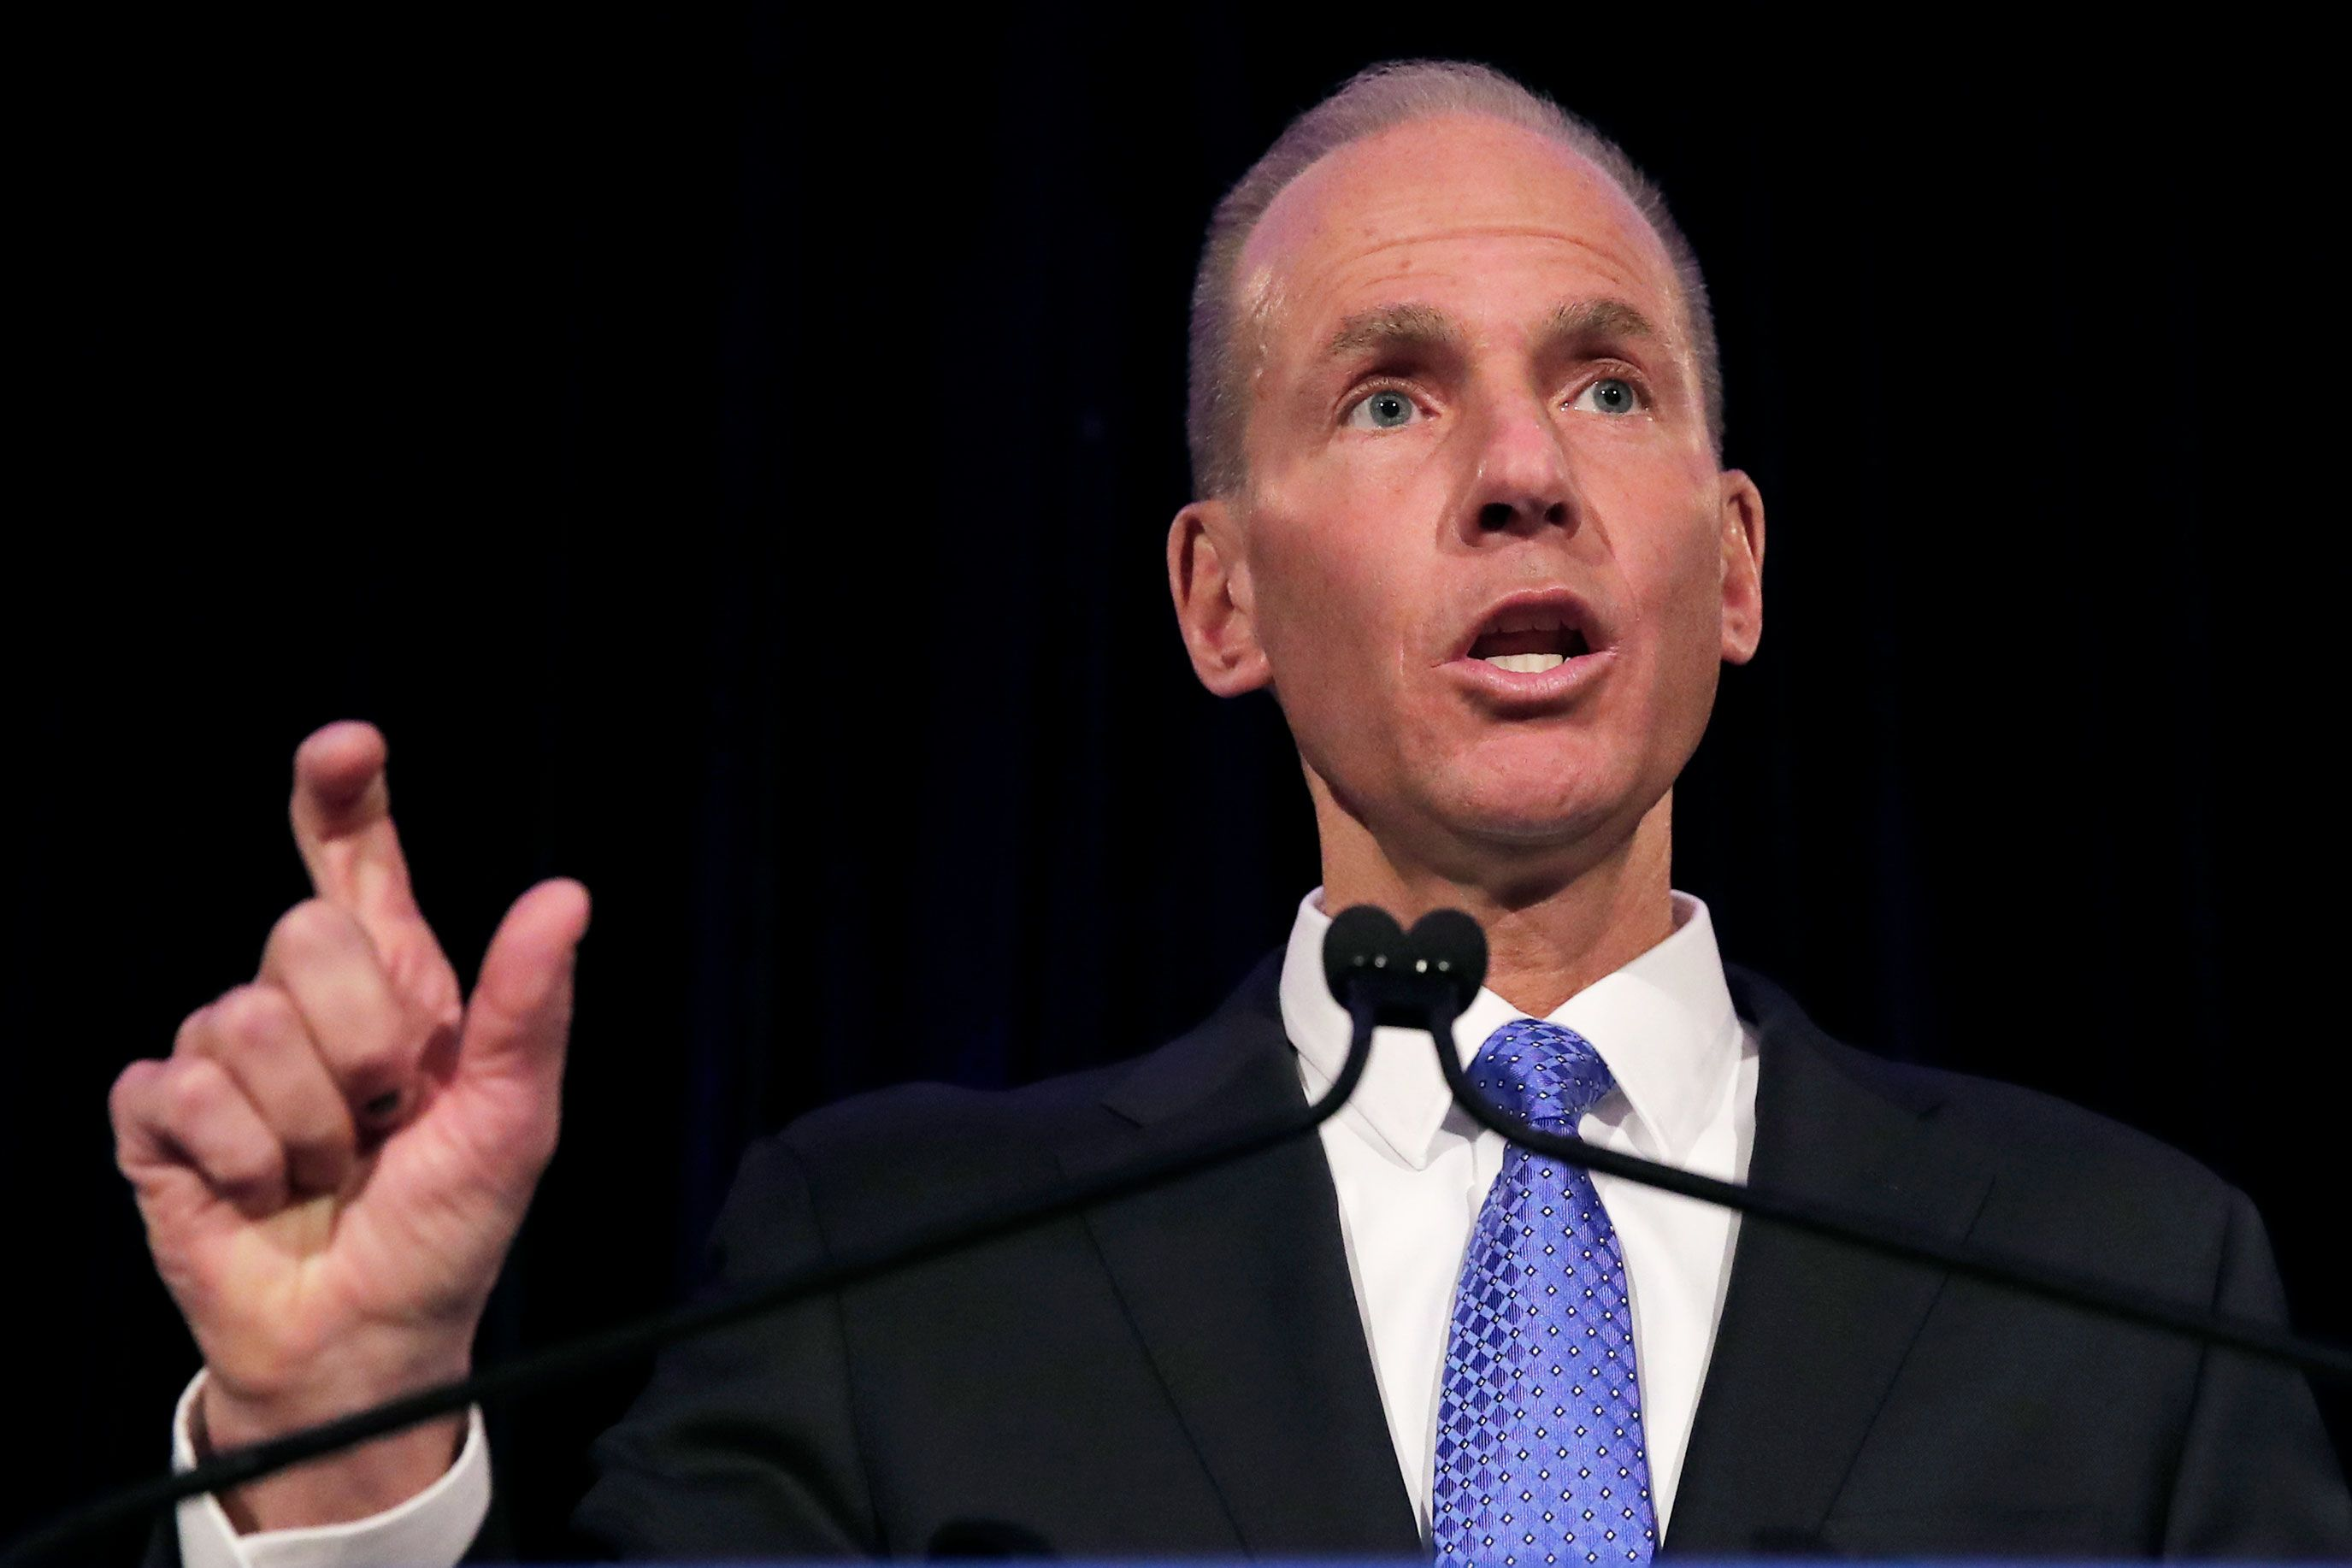 Watch Boeing's CEO Dennis Muilenburg testify before Congress on 737 Max crashes